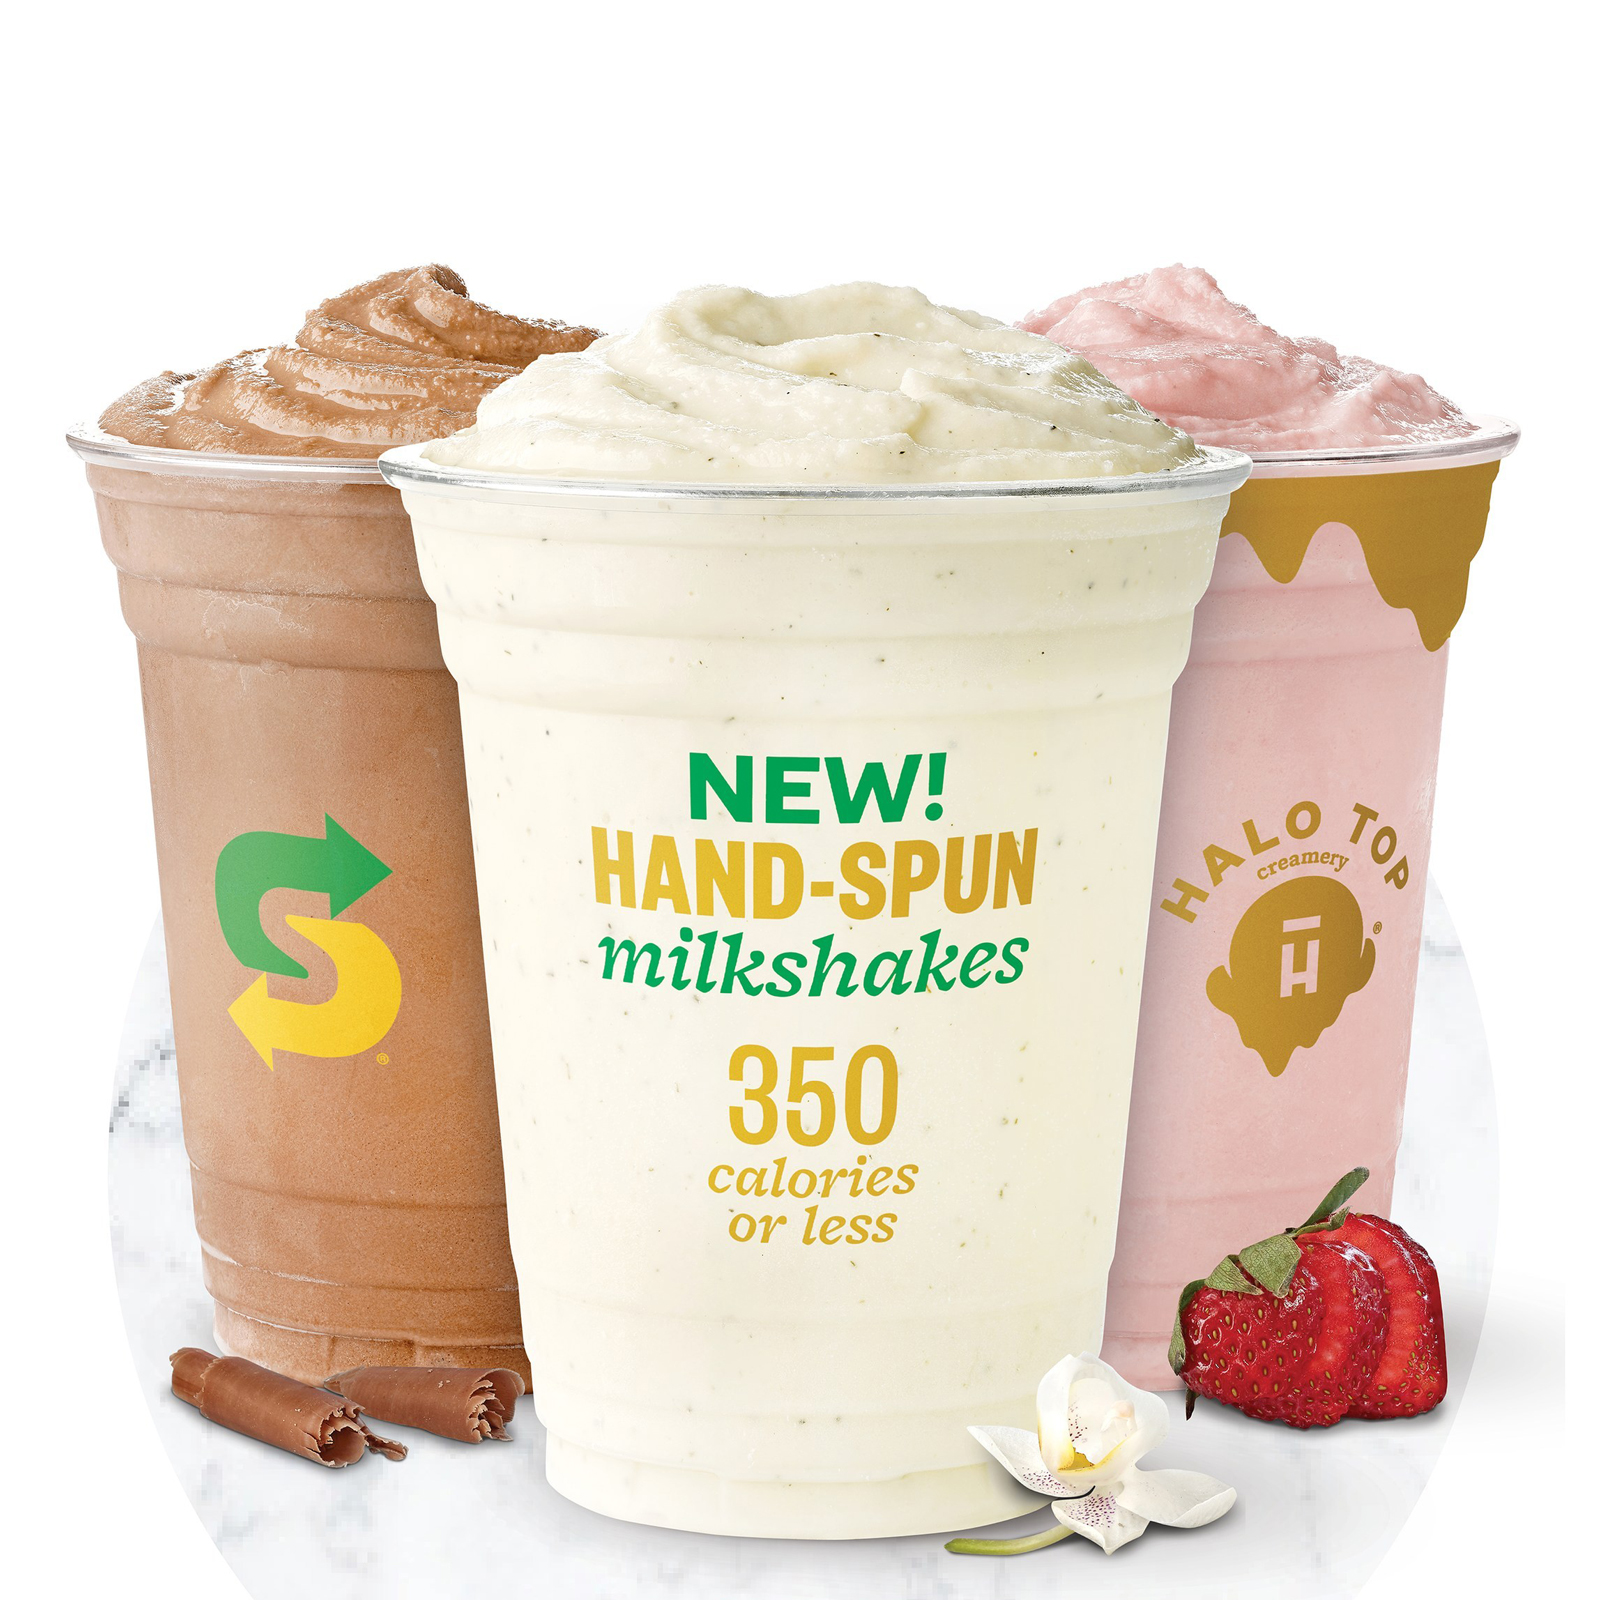 Subway Tests Halo Top Milkshakes at 1,000 Locations